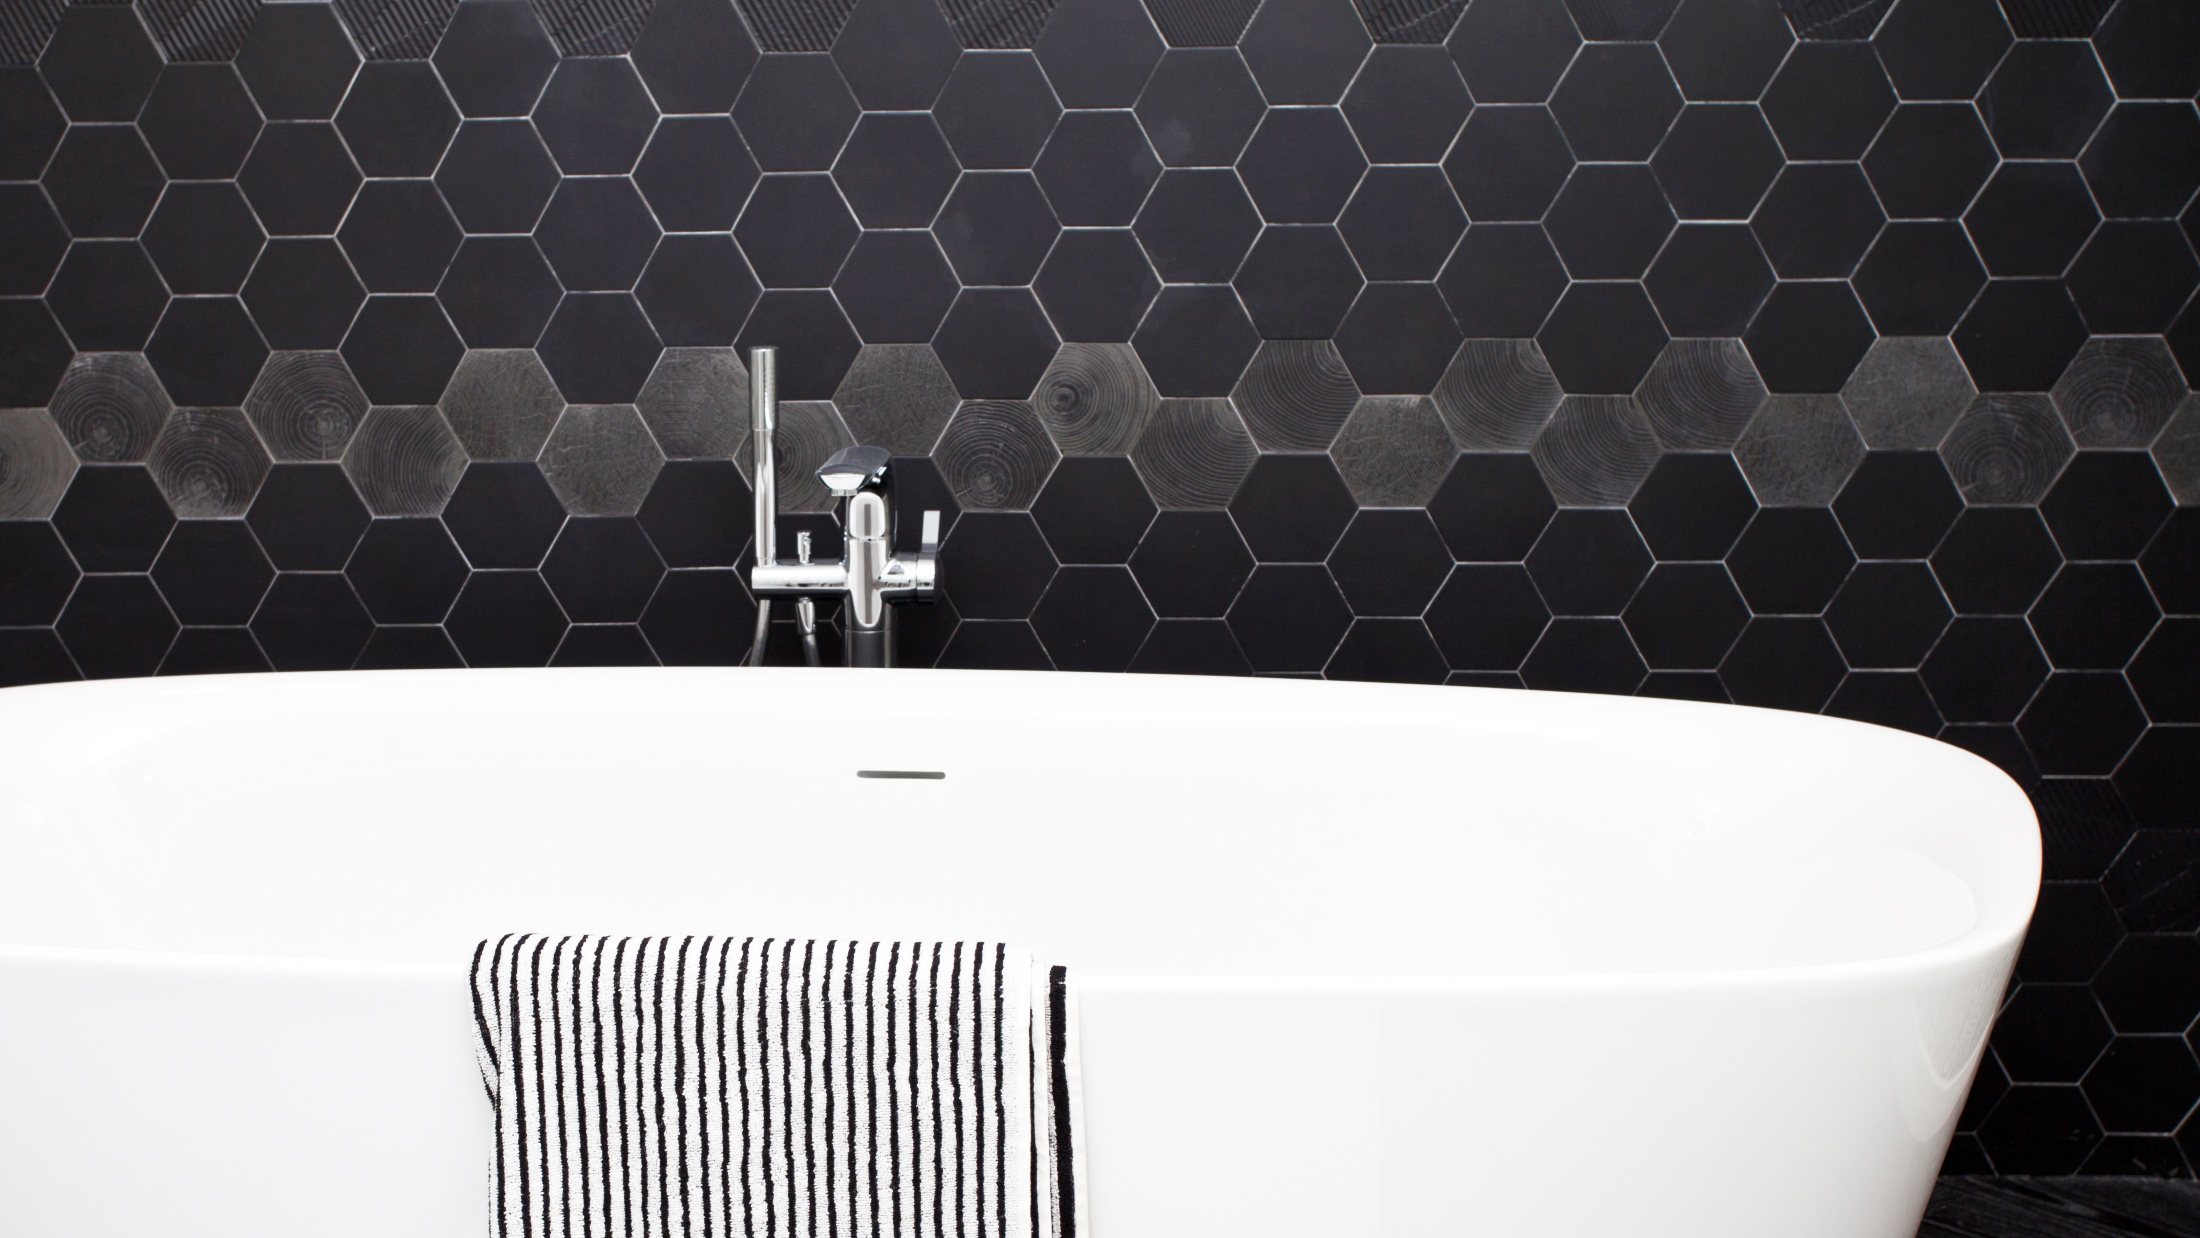 Hexagonal tiles on walls